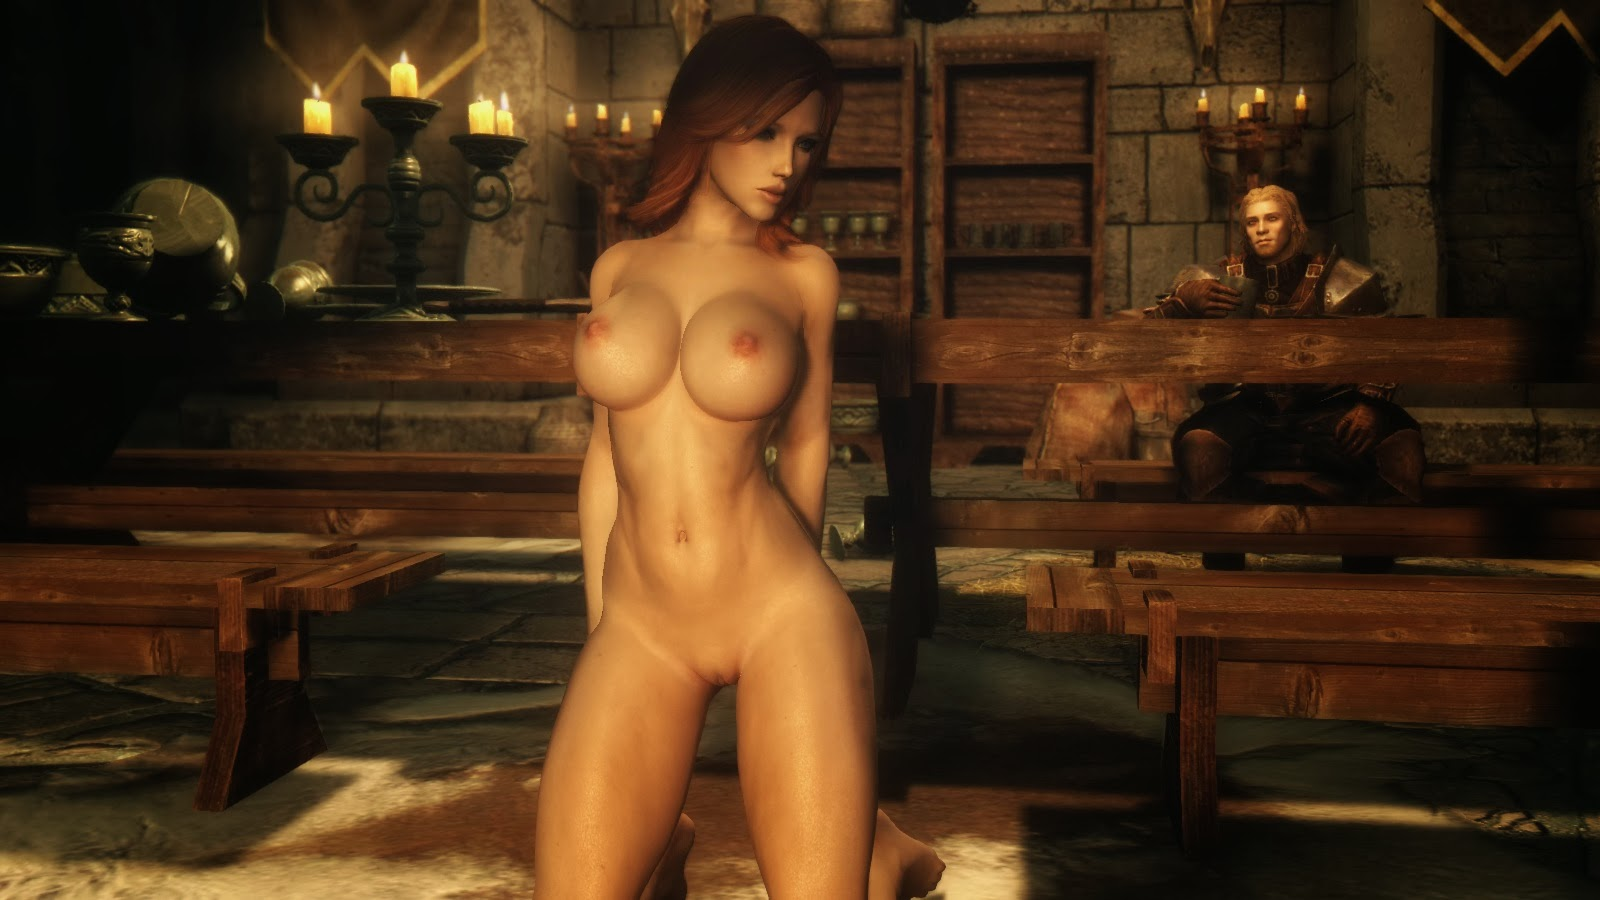 Skyrim nude female download cartoon tubes